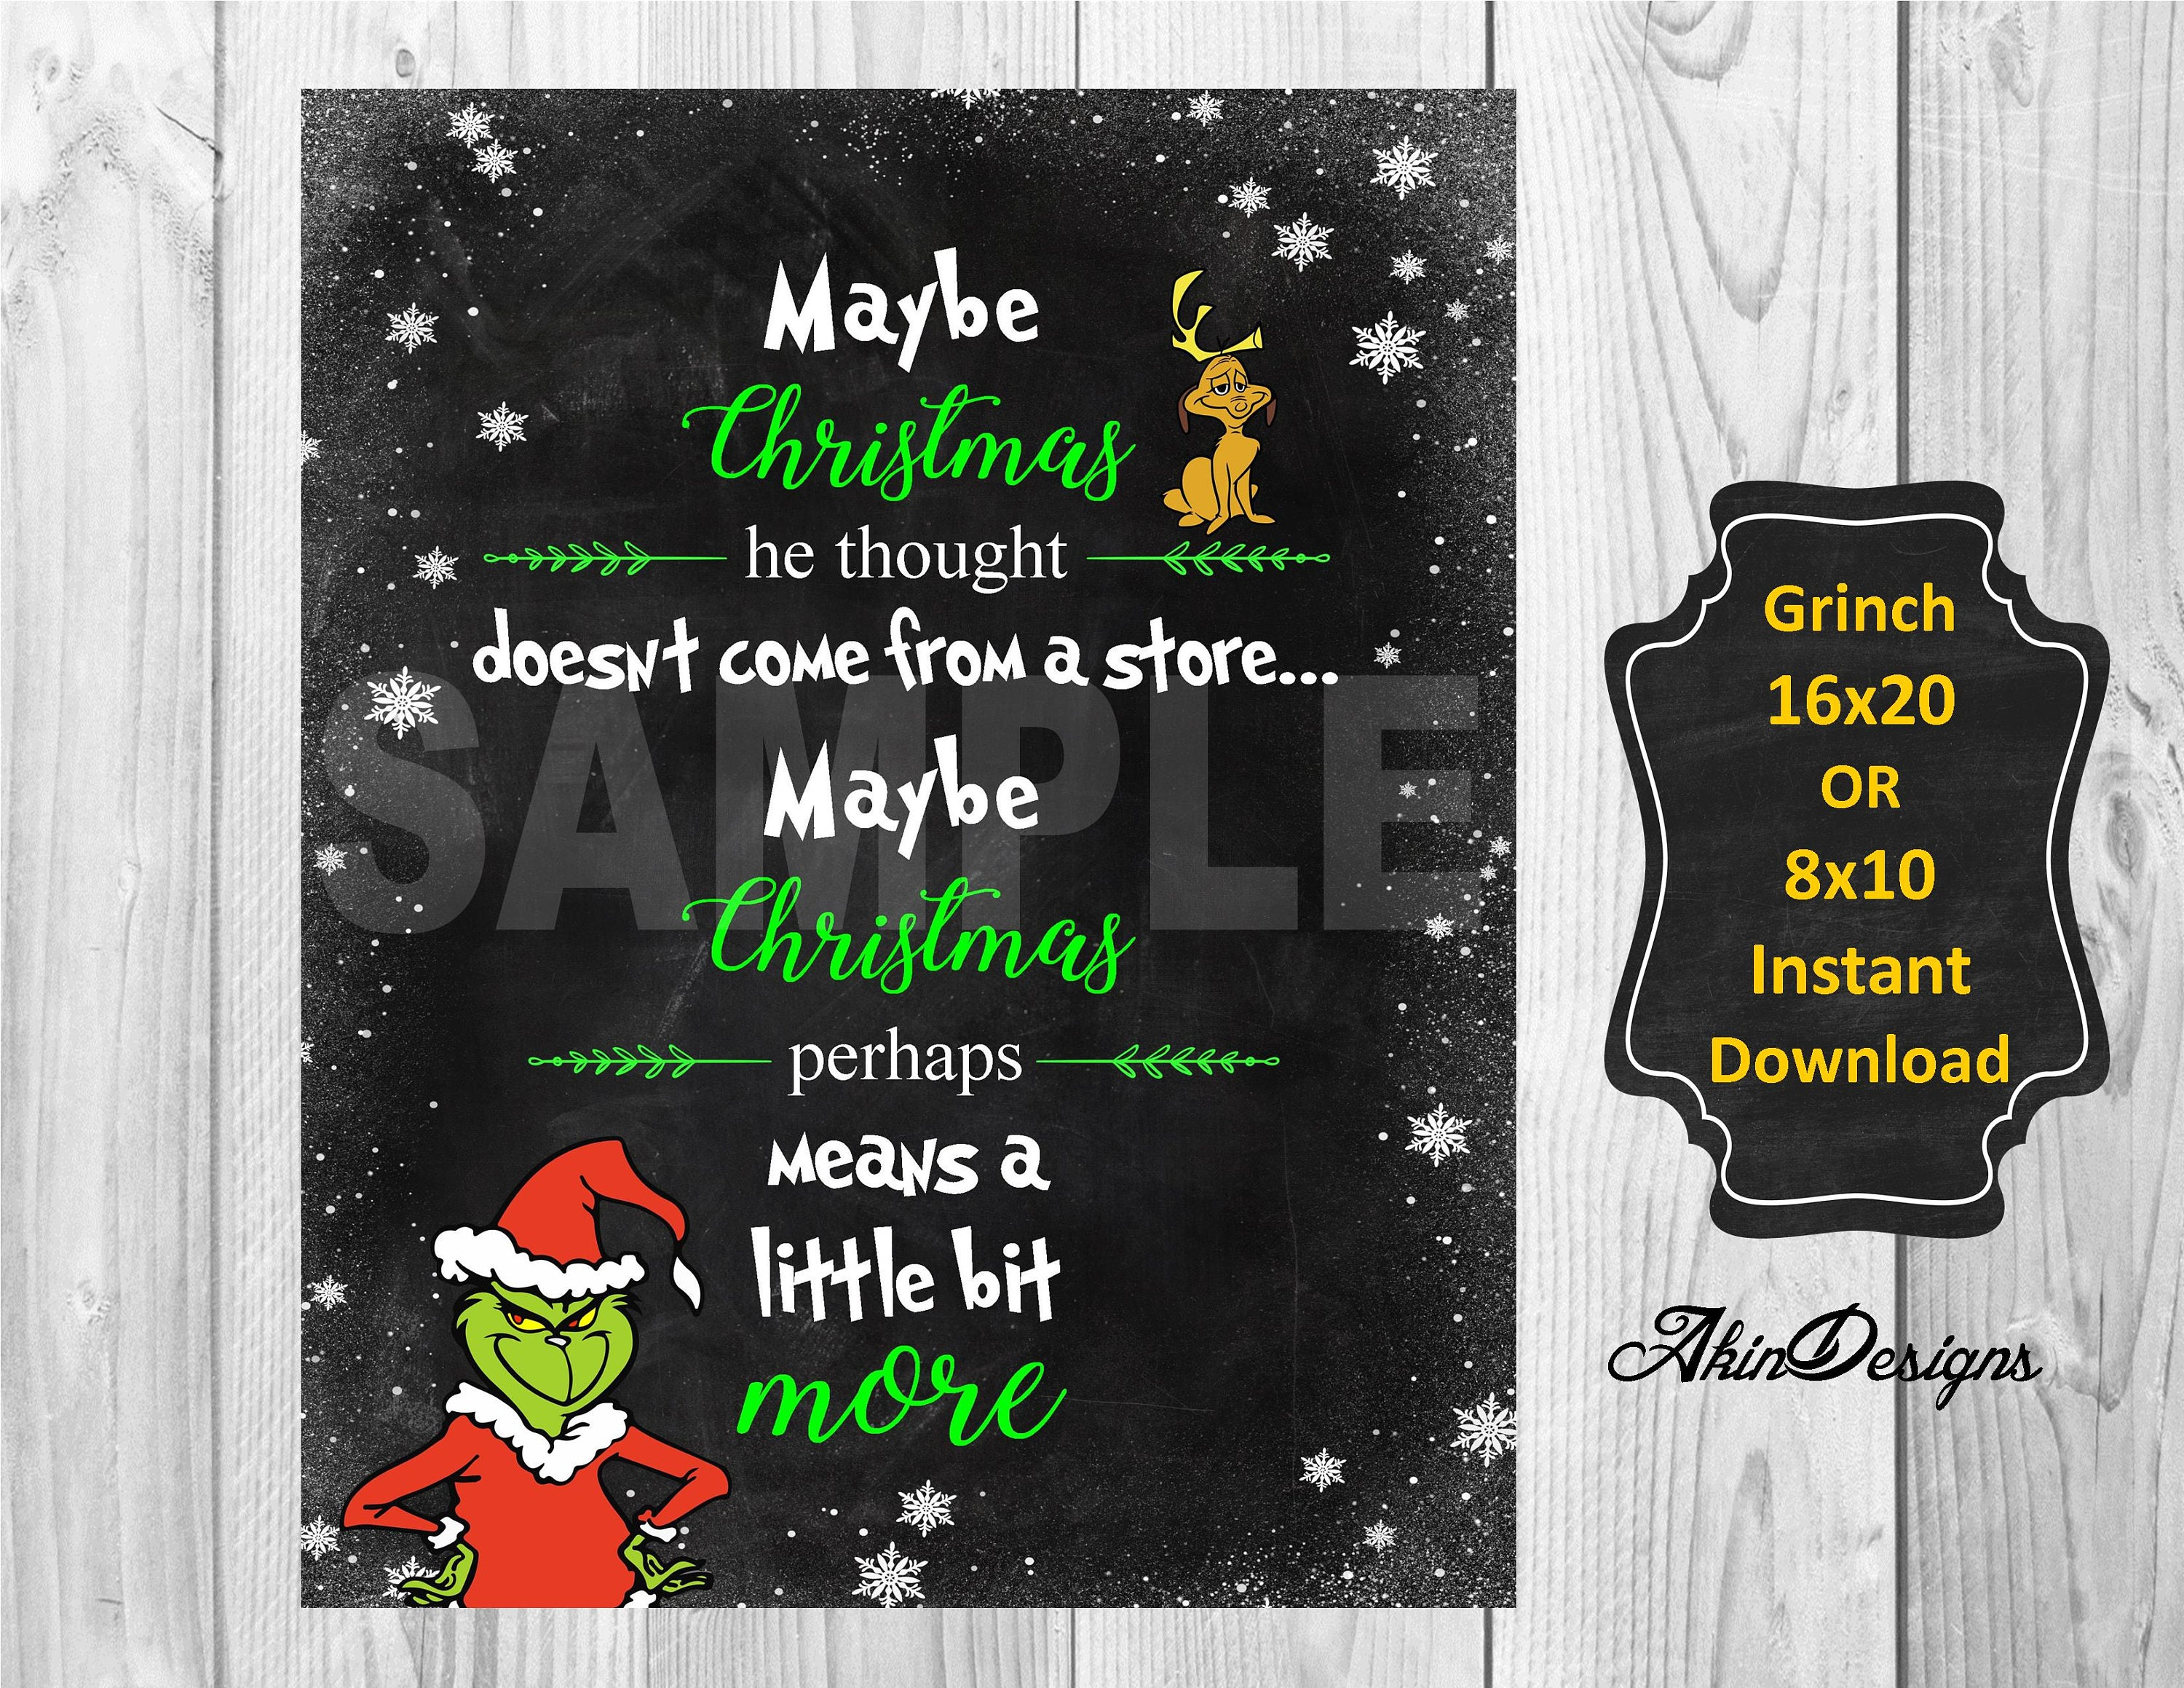 Grinch quote instant download print at 8x10 or 16x20 | etsy.